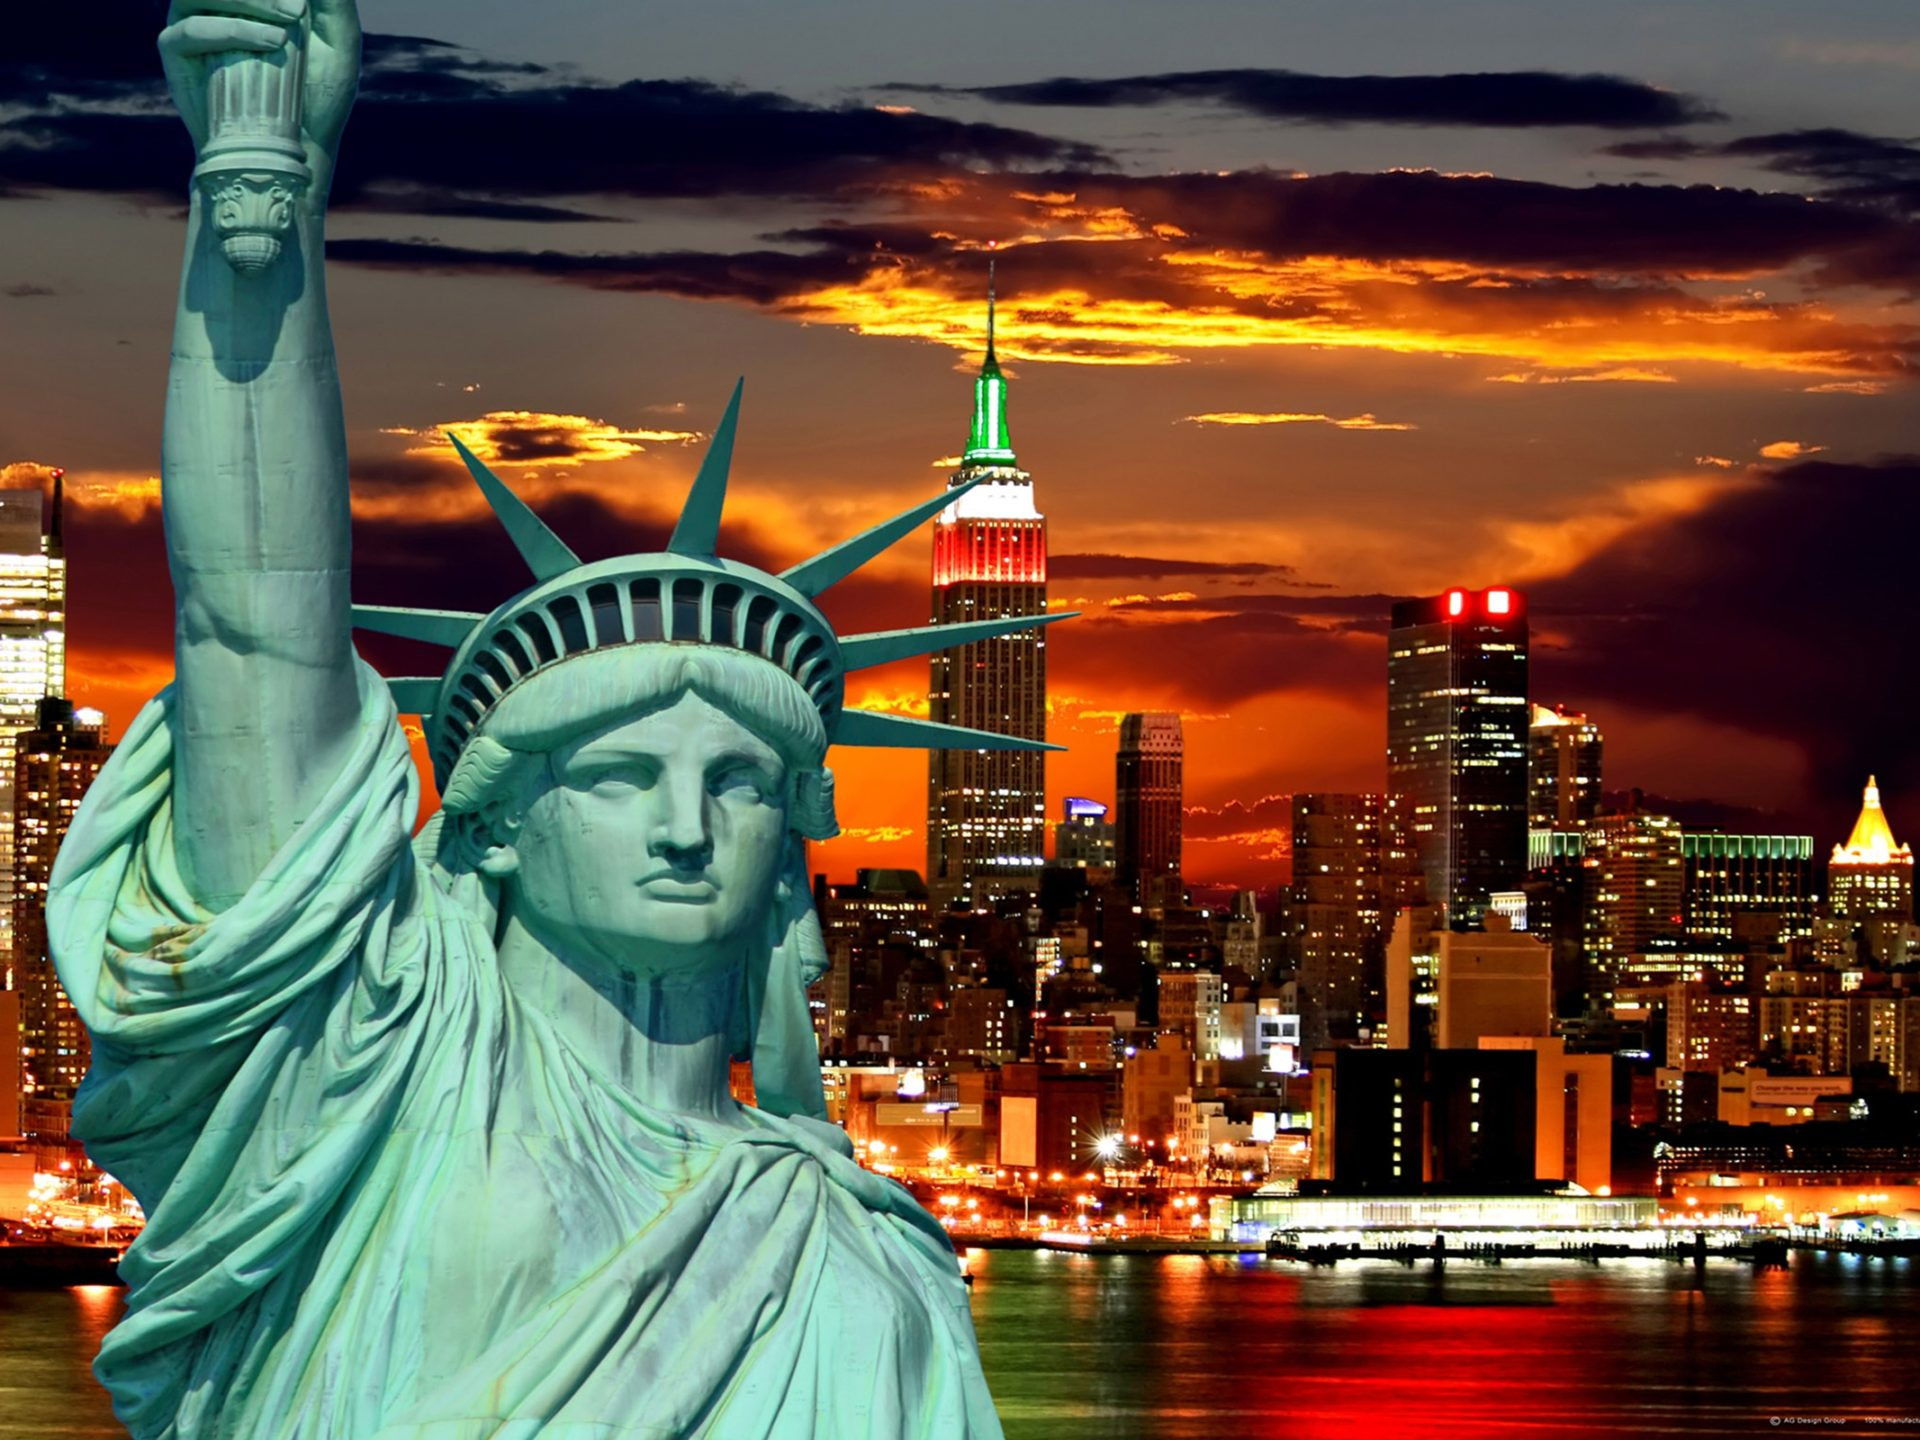 Free 3d Desktop Wallpapers Backgrounds New York City Statue Of Liberty Wallpaper Ftm 0812 1